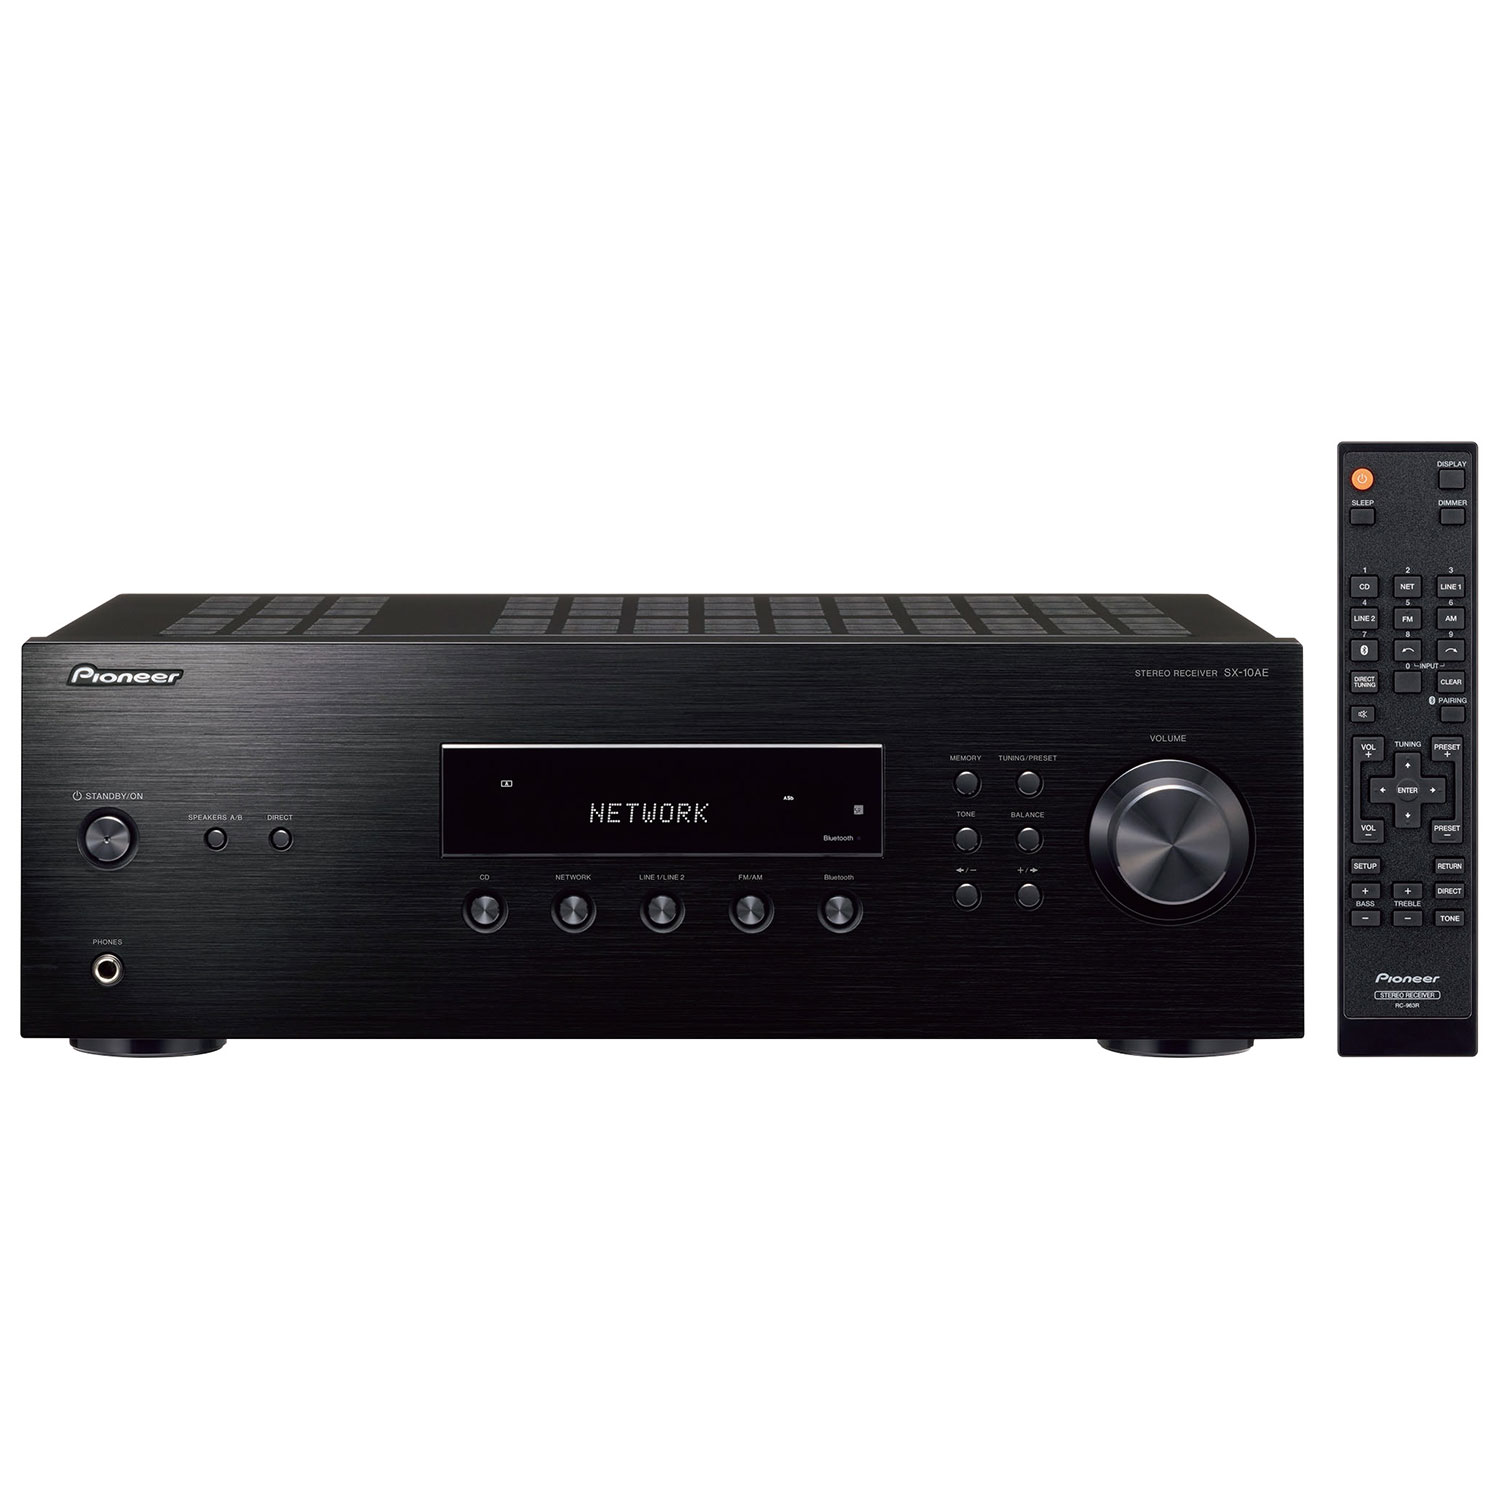 Pioneer SX-10AE 2.0 Channel Stereo Receiver